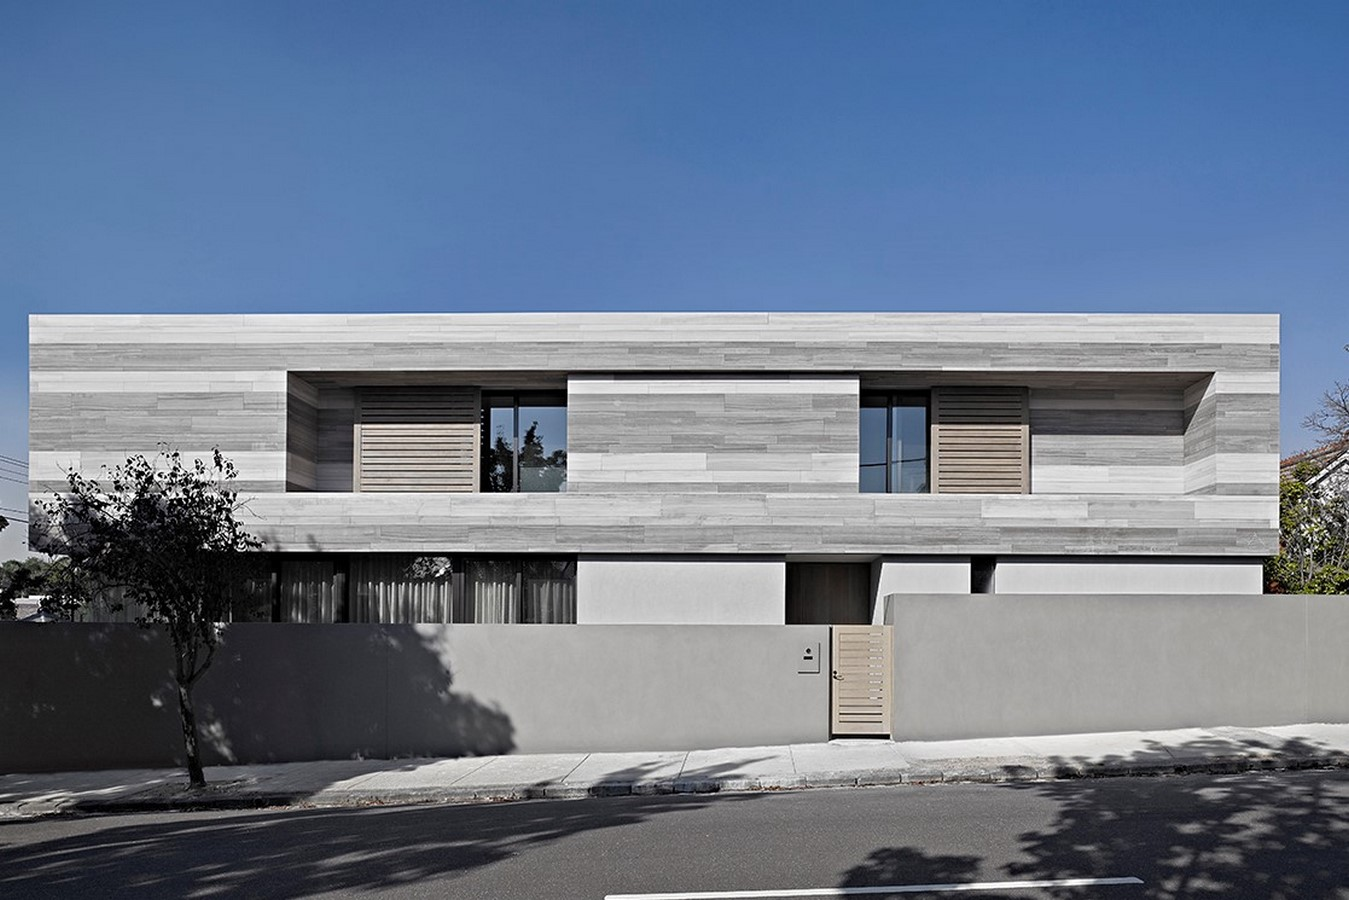 Cassell Street Residence by B.E Architecture - Sheet2